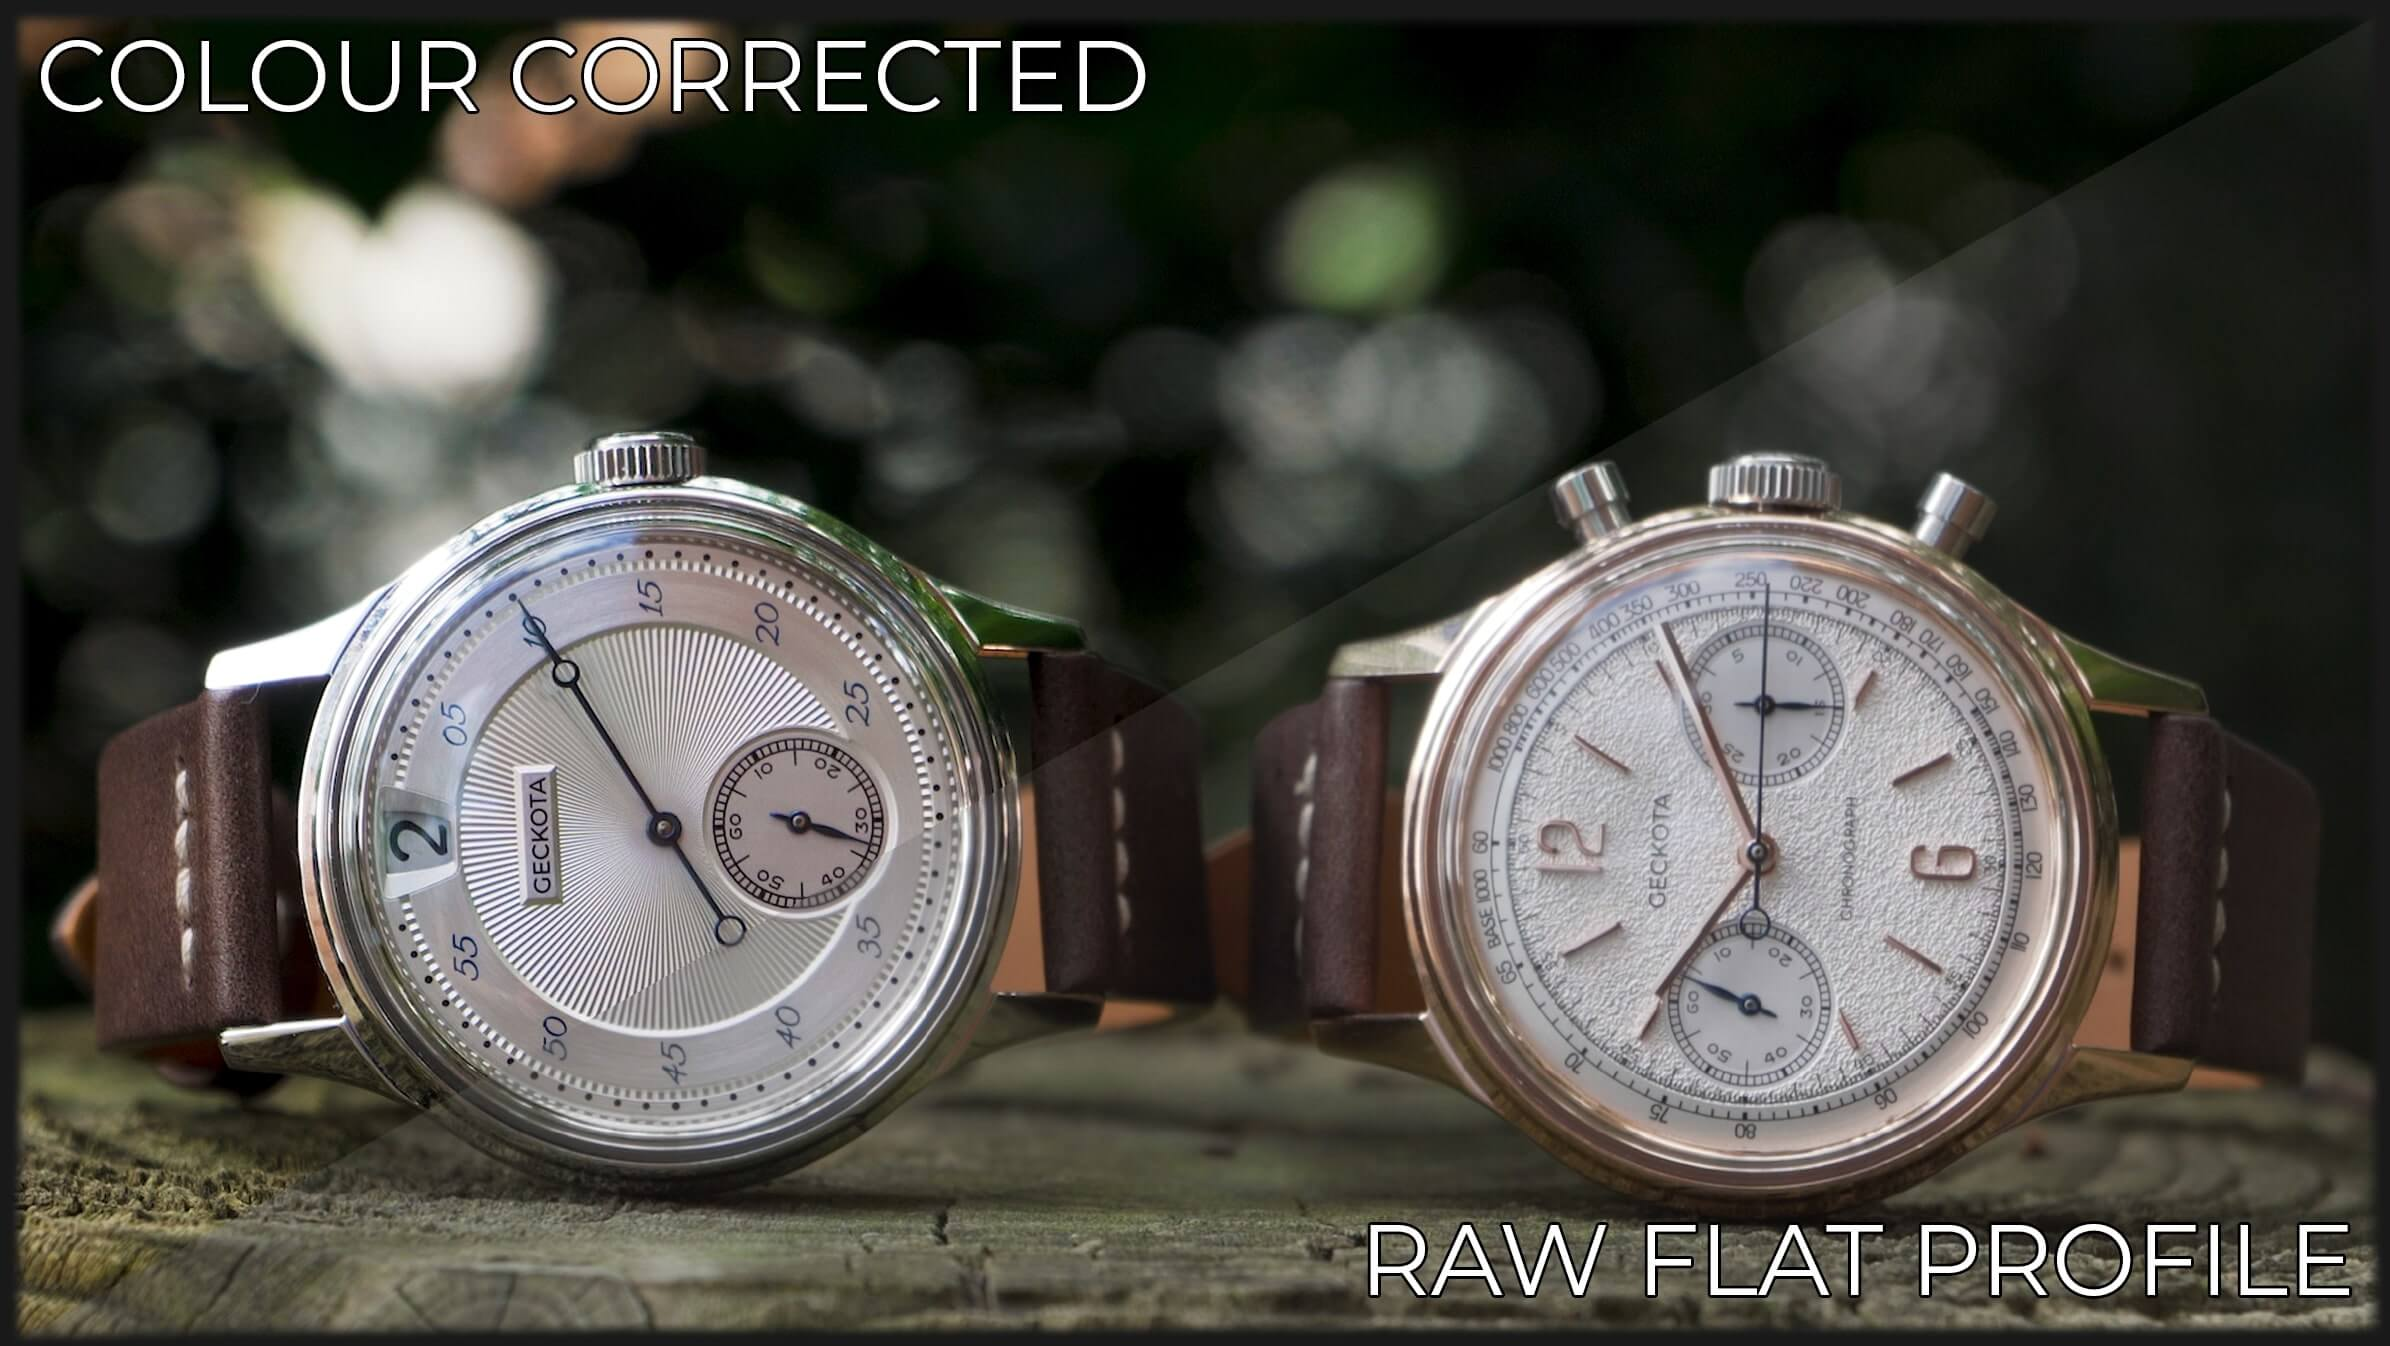 Comparing Colour Correction to the Flat Picture Profile